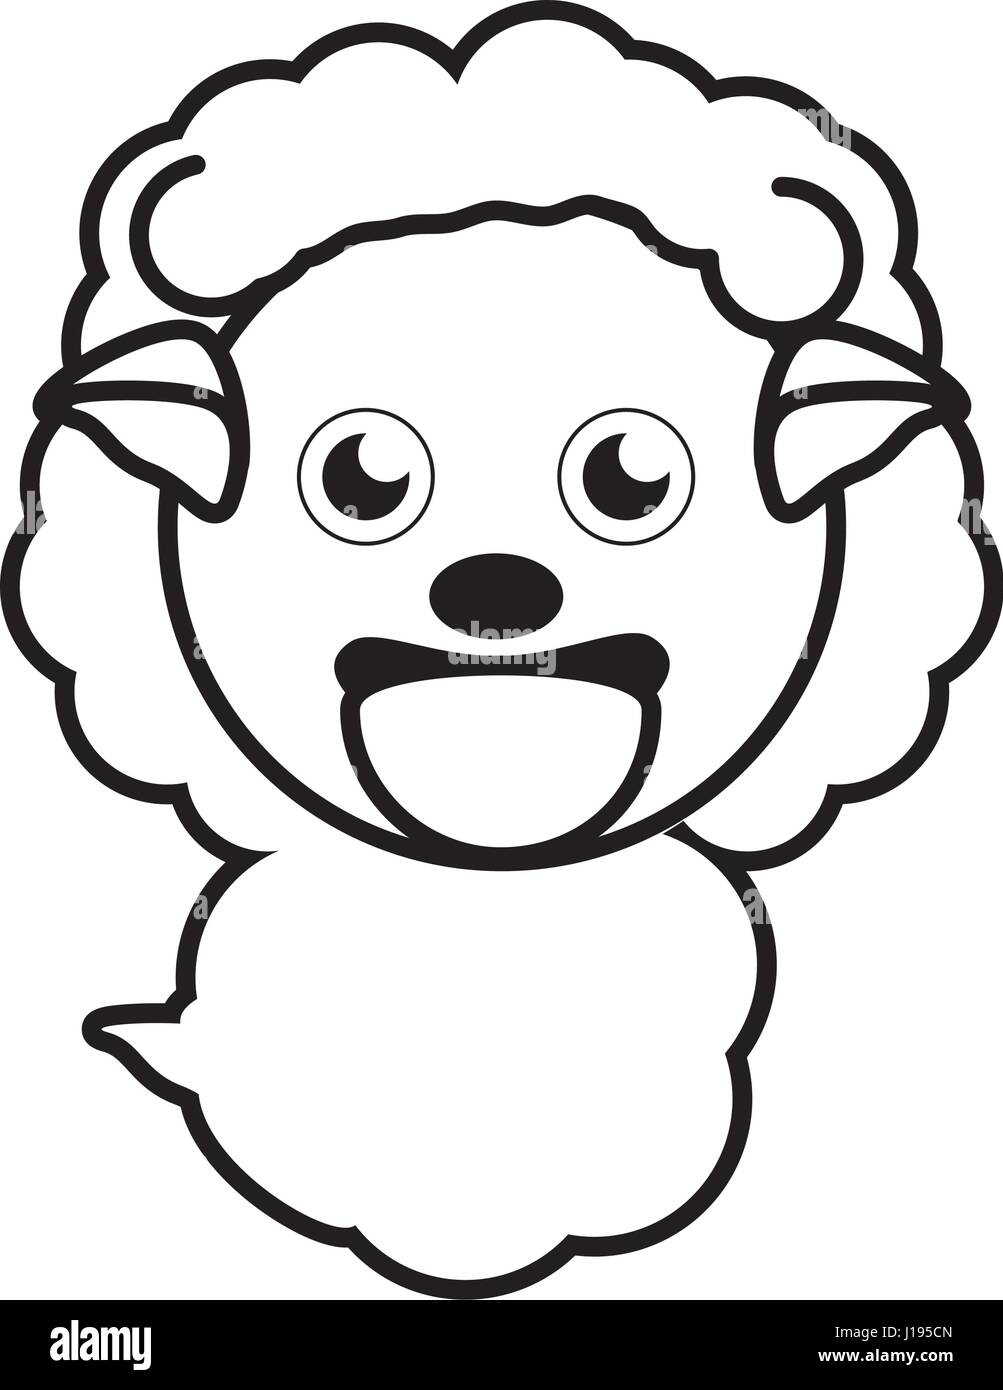 sheep animal toy outline - Stock Vector